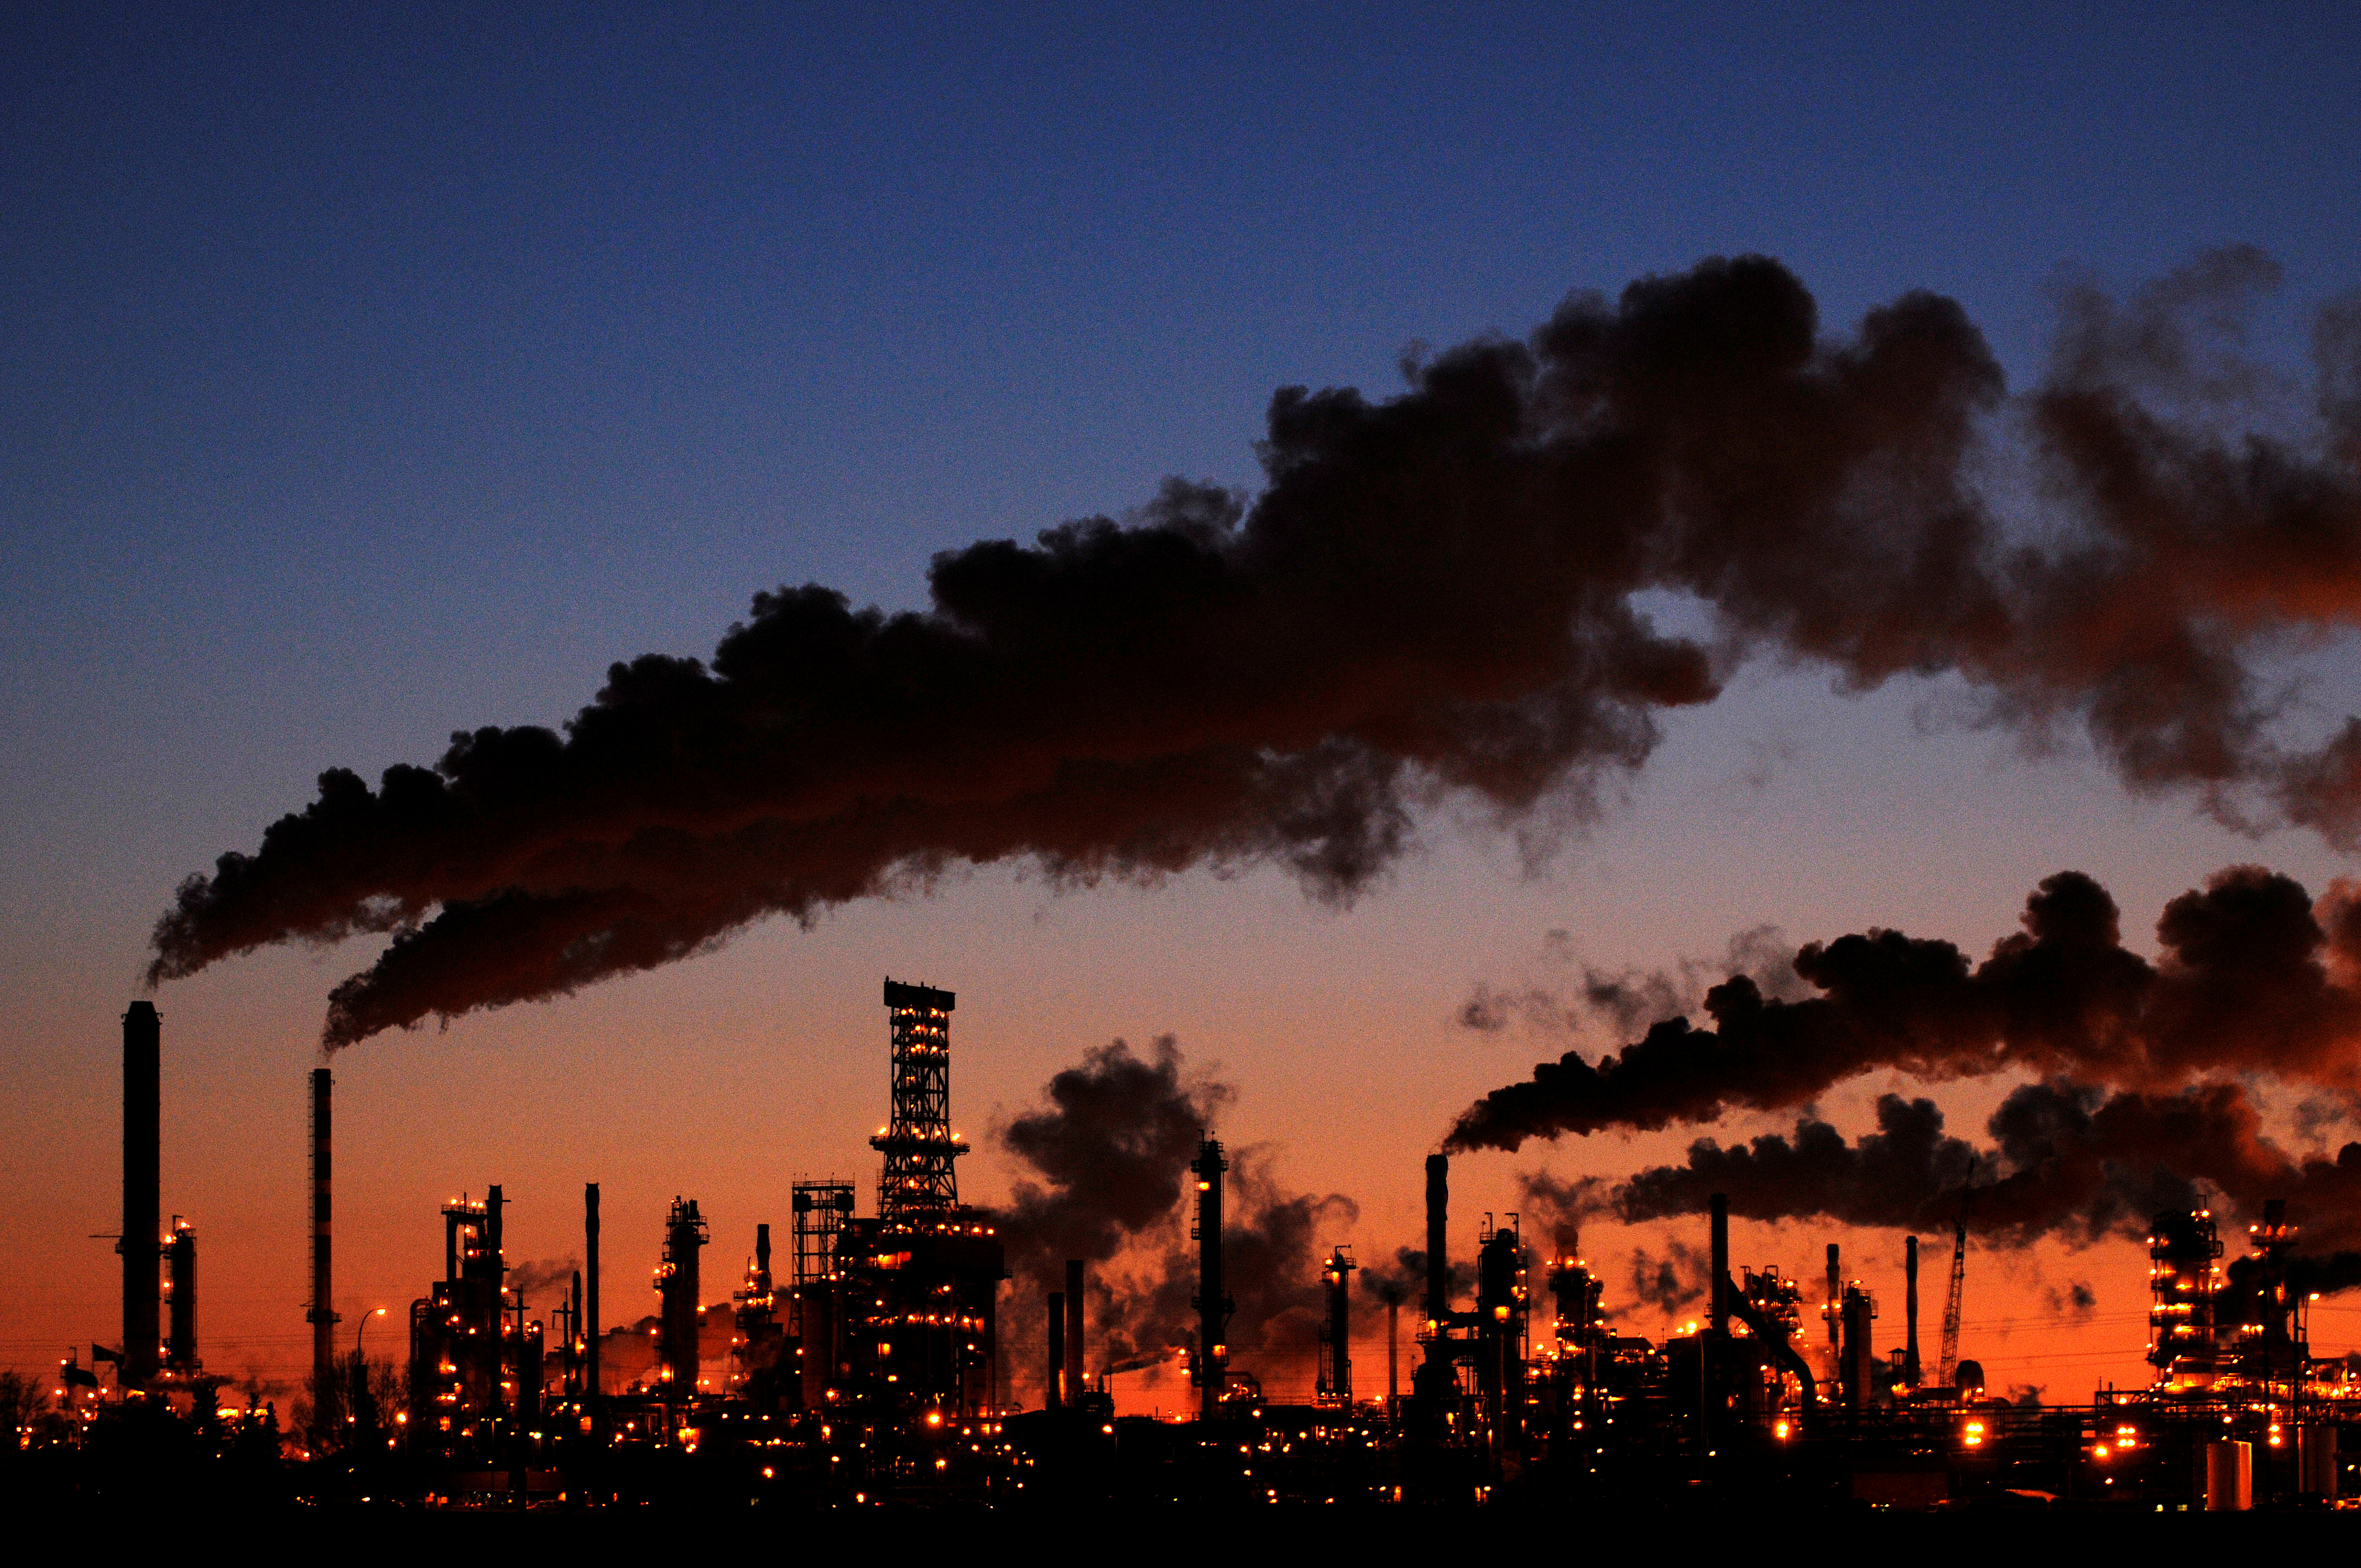 Petro-Canada's Edmonton Refinery and Distribution Centre glows at dusk in Edmonton February 15, 2009.  REUTERS/Dan Riedlhuber/File Photo